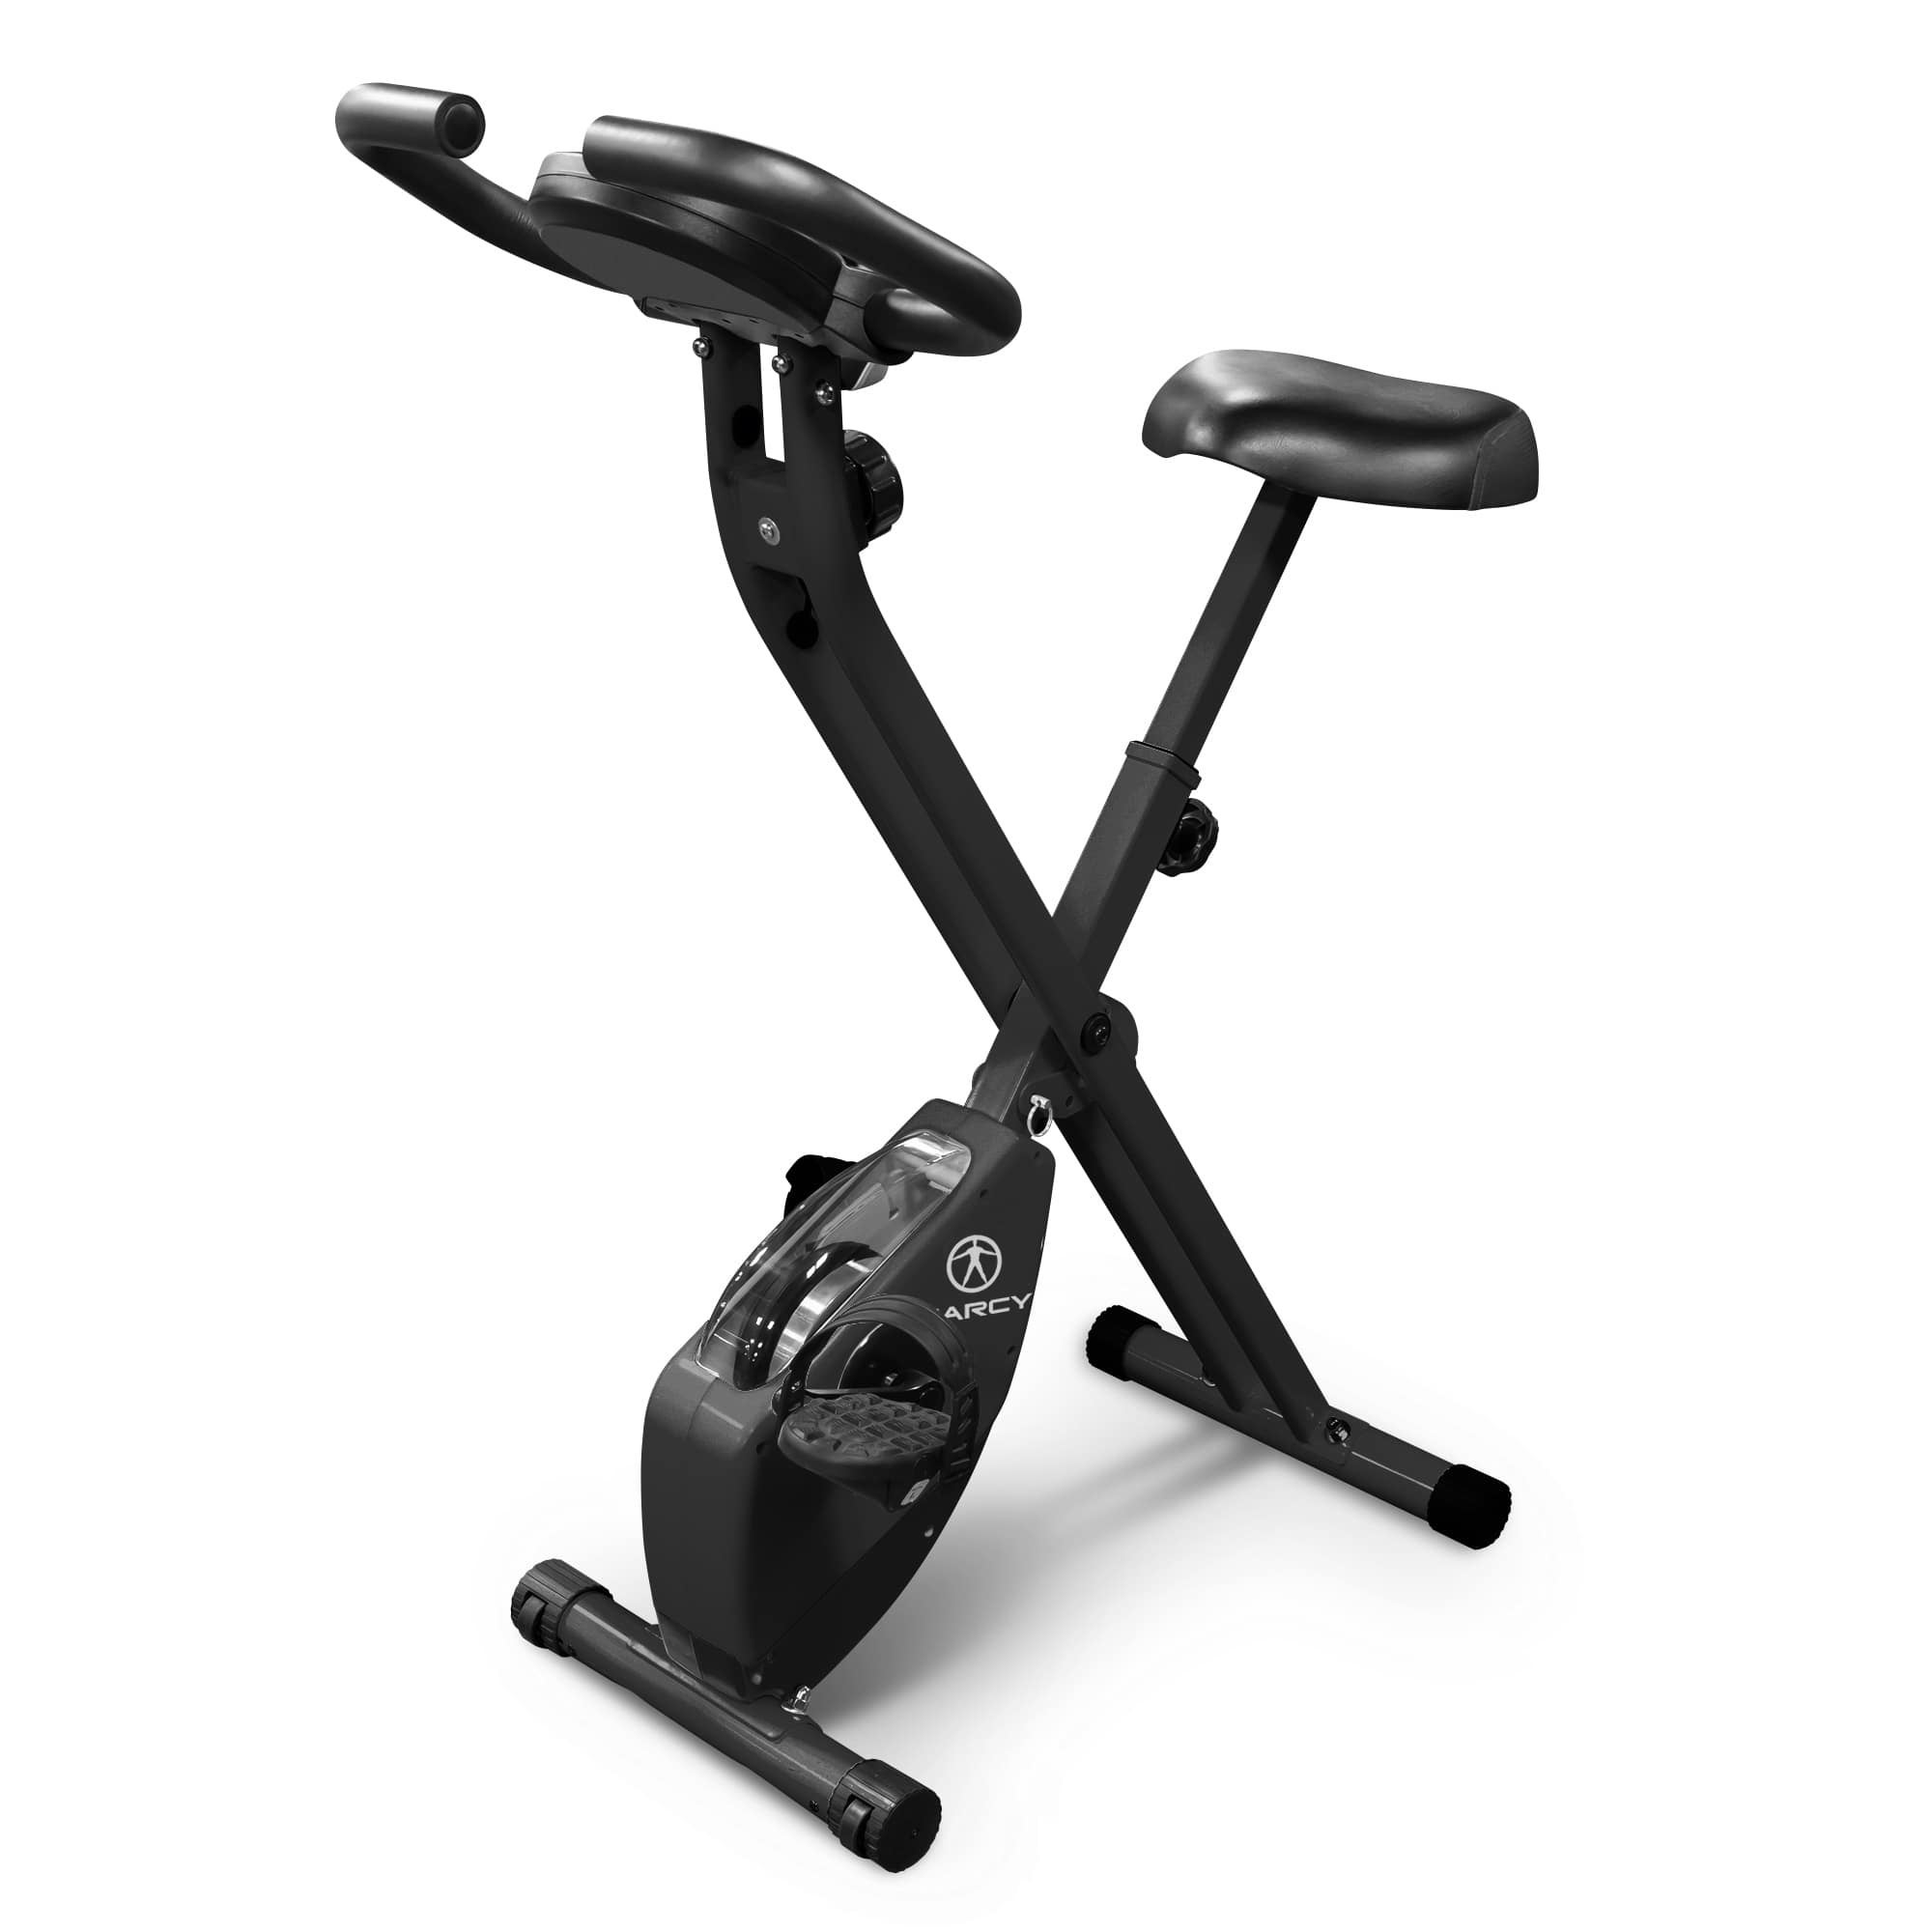 Folding Portable Exercise Bike Adjustable Padded Seat Counter Weighted  Pedals